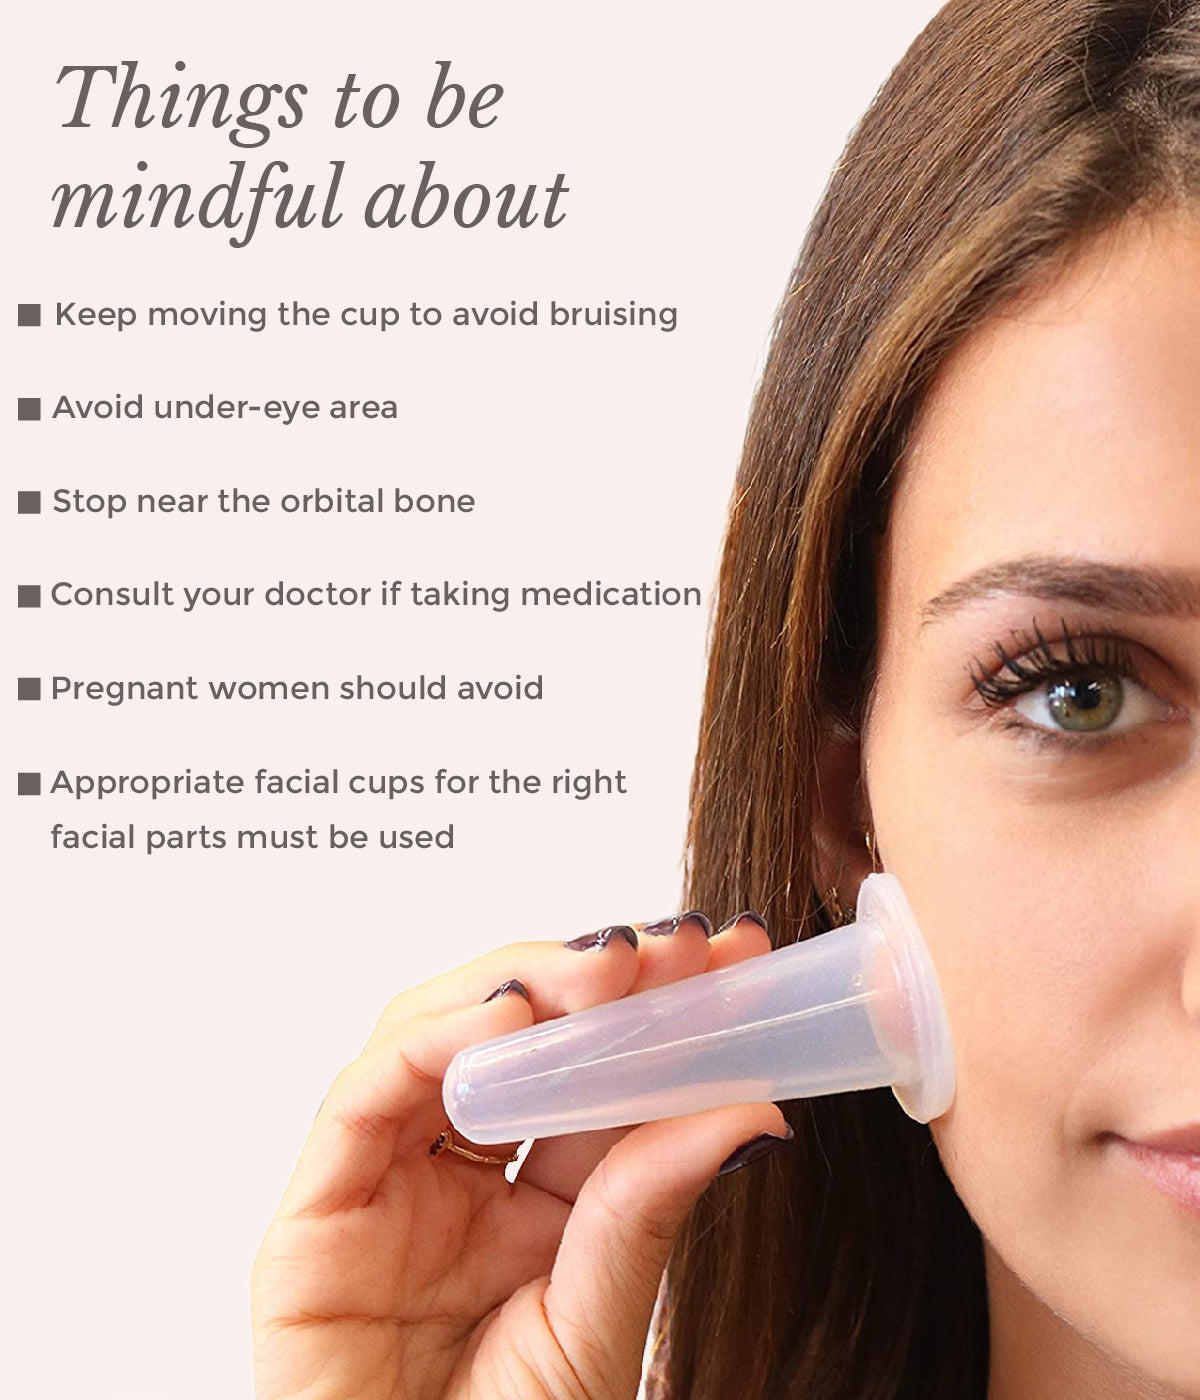 This is an image of things to be mindful of facial cupping on www.sublimelife.in